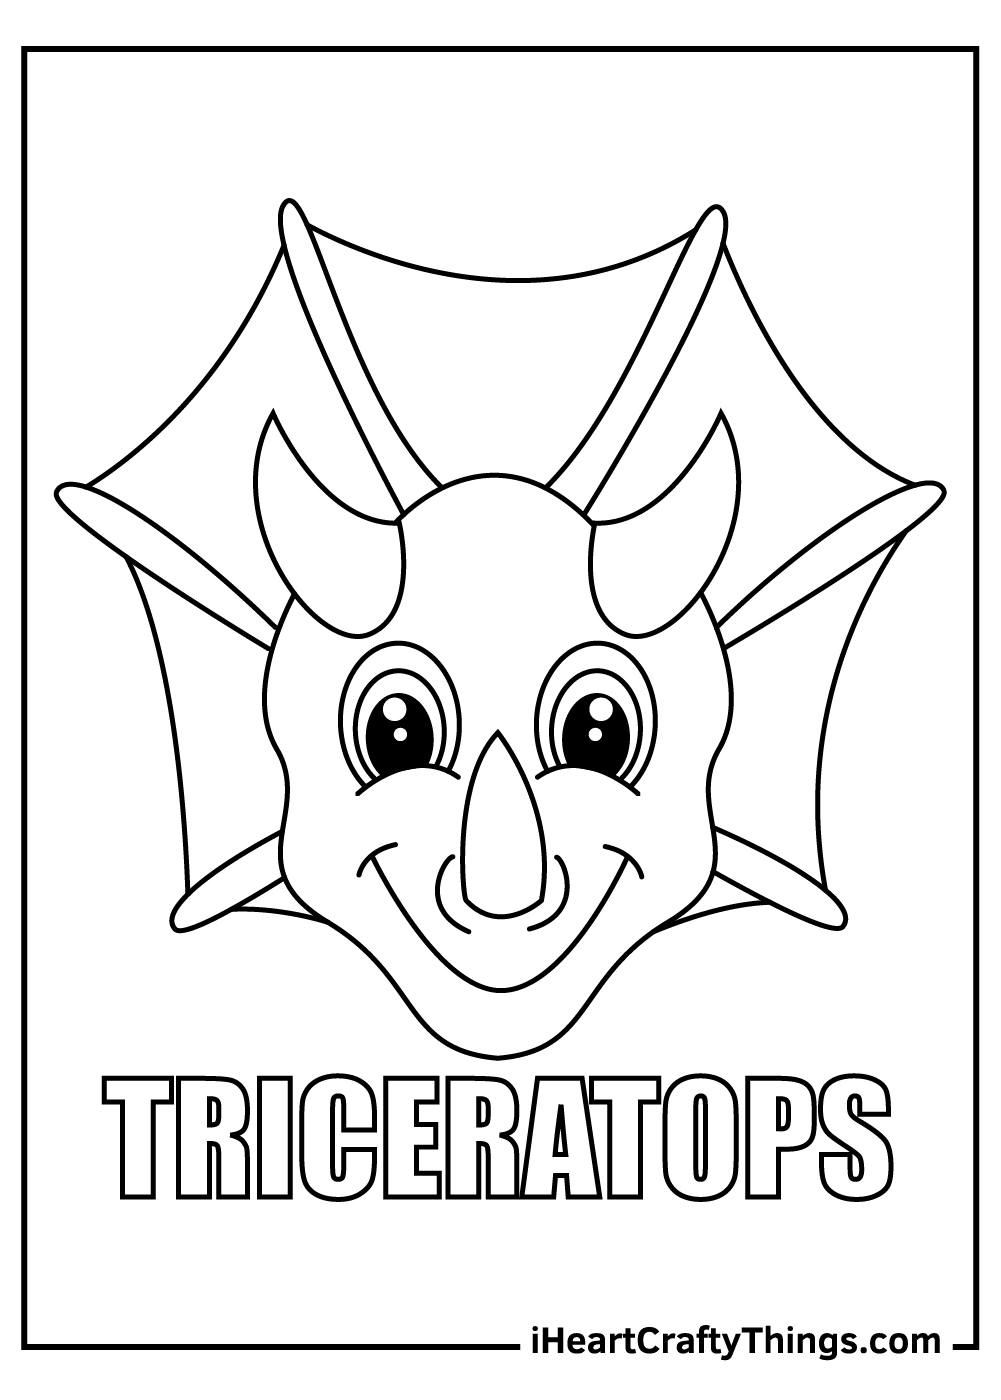 dinosaur triceratops coloring pages for preschoolers